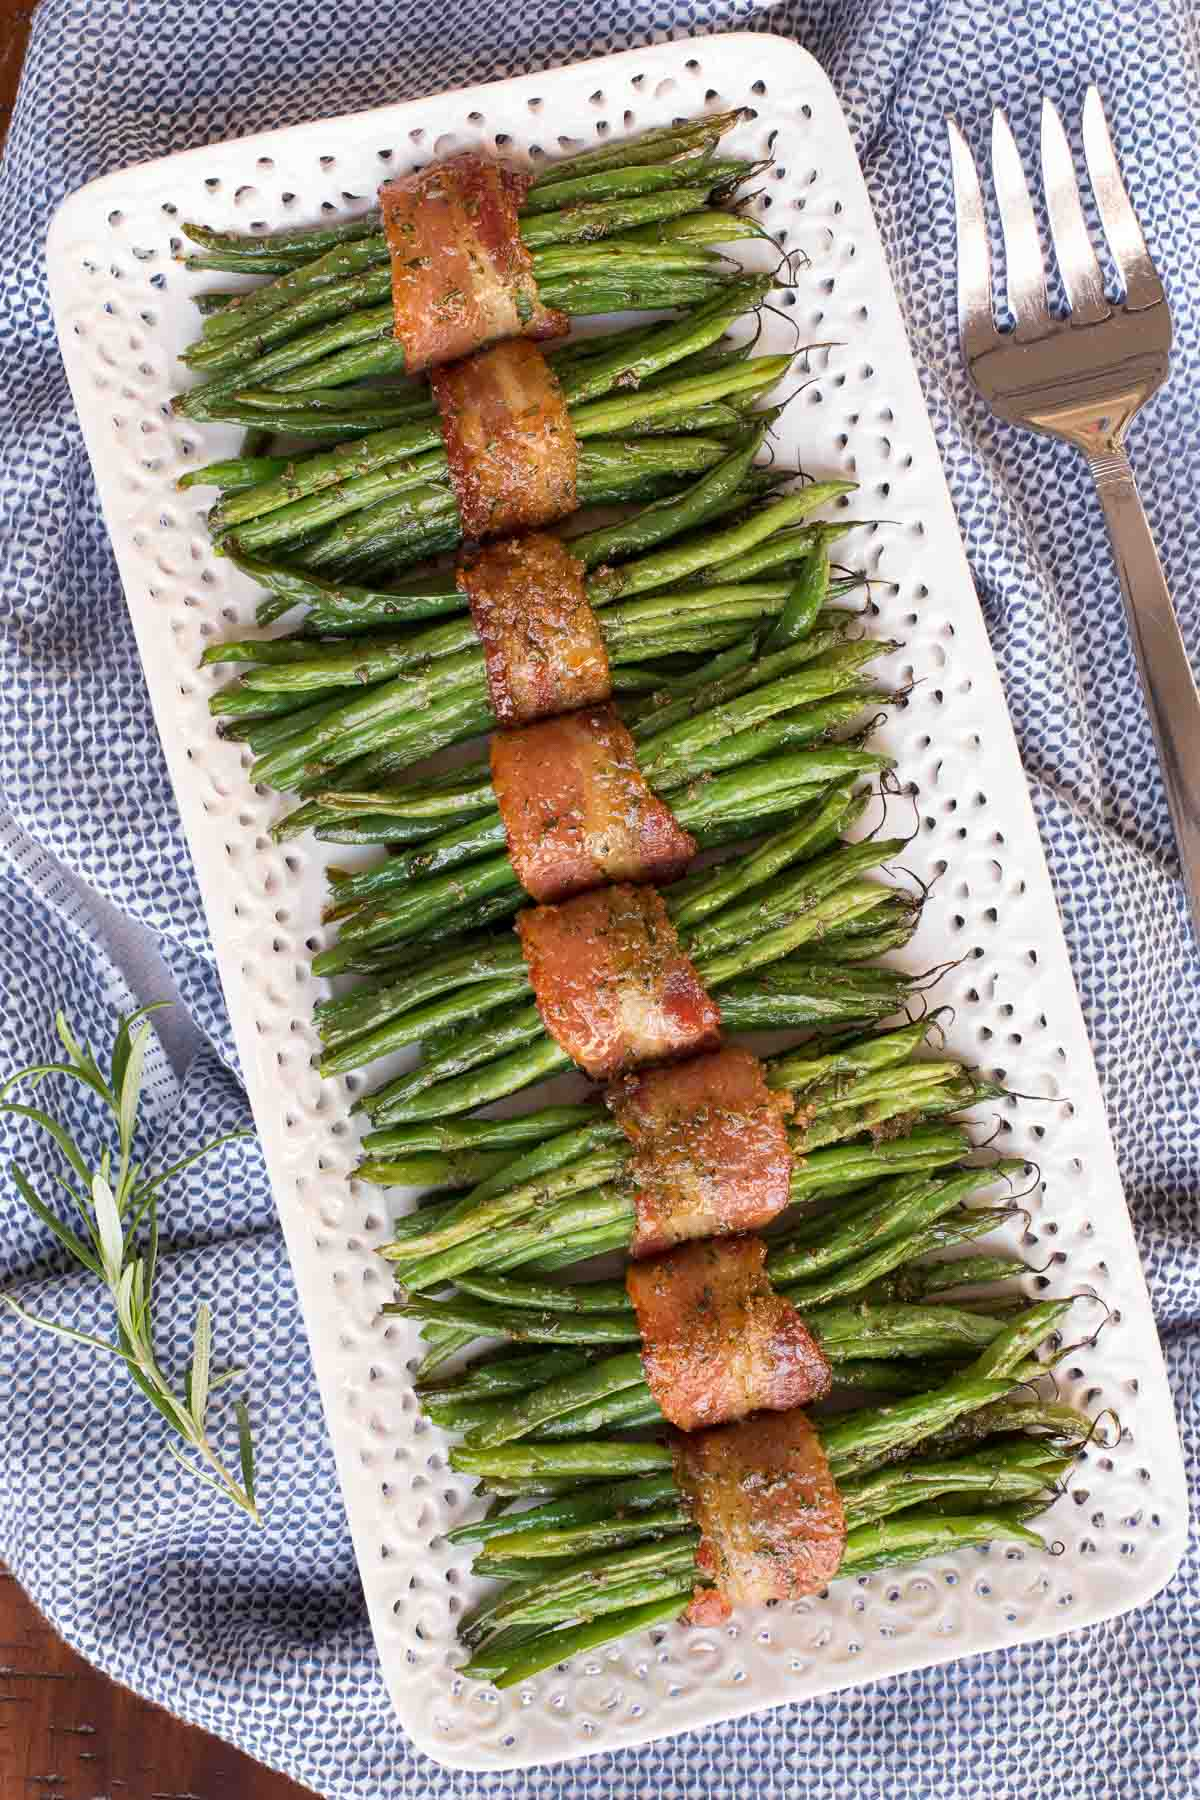 Overhead closeup photo of Make-Ahead Bacon Wrapped Green Beans on a white serving platter on a blue and white towel.